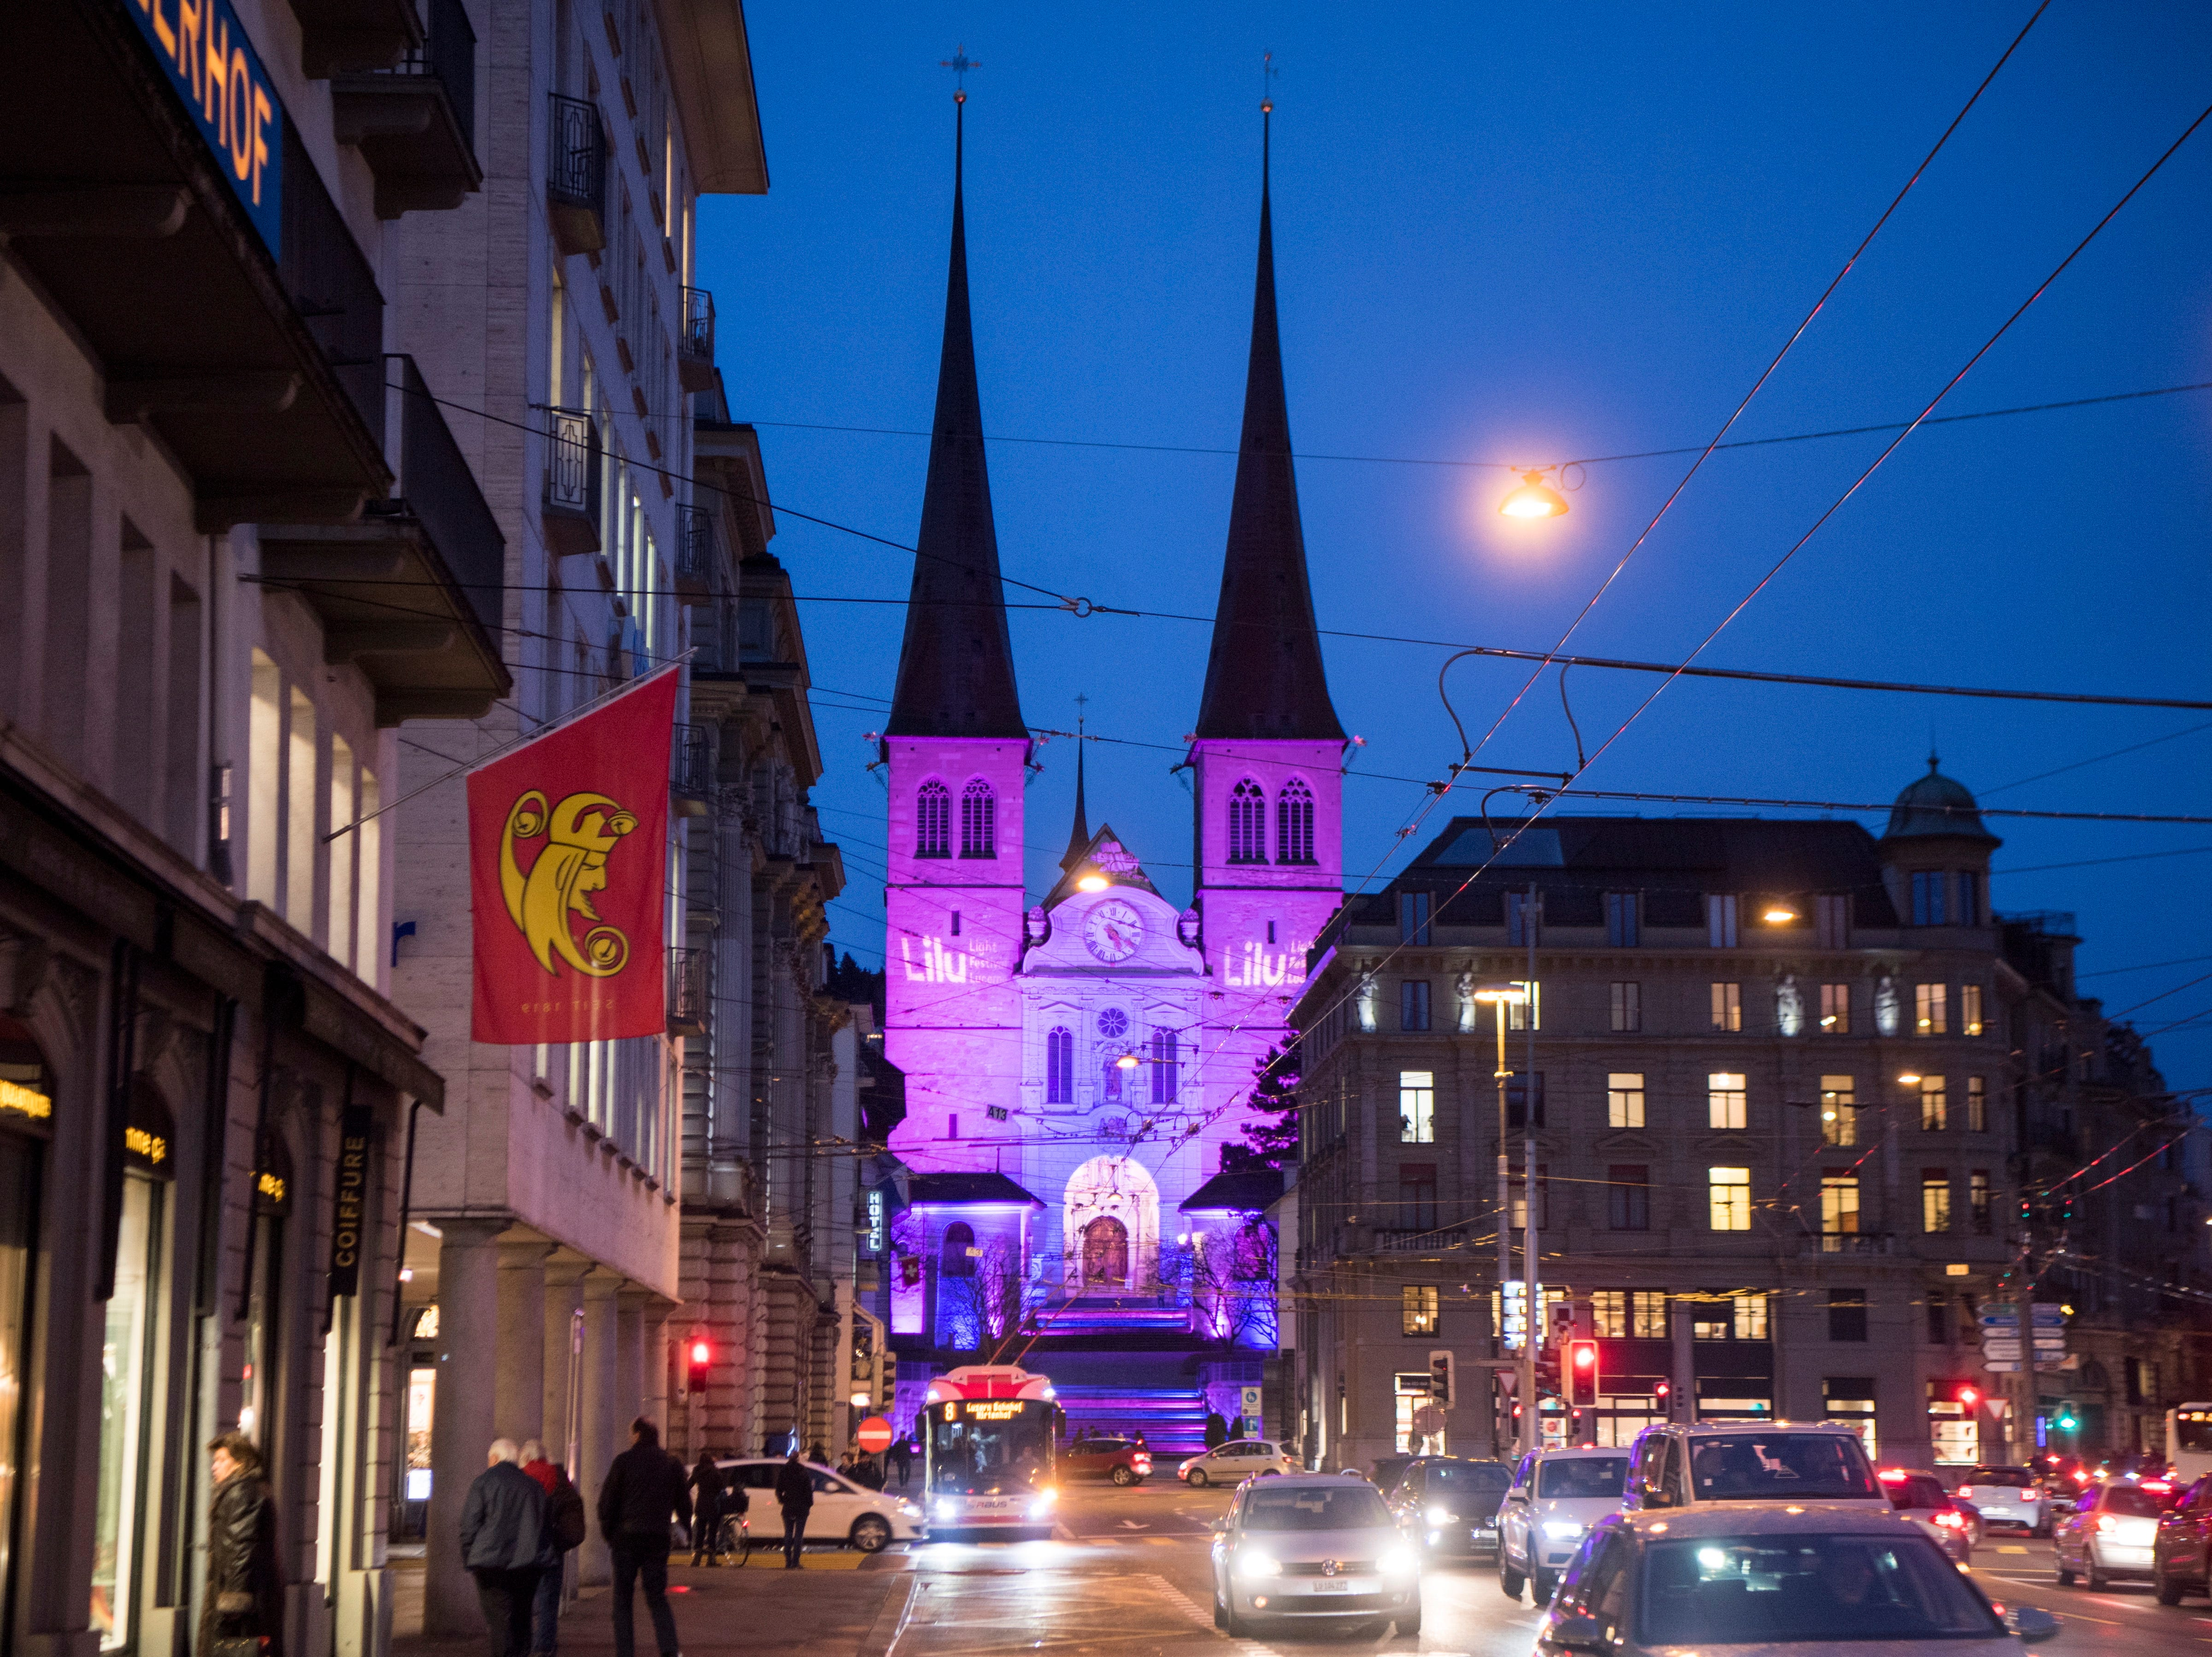 epa07271995 A view of the illuminated Hofkirche church during the pre-opening of the Lilu Light Festival Luzern, in Lucerne, Switzerland, 09 January 2019. Around 17 light art projects will be presented at the festival from 10 to 20 January.  EPA-EFE/URS FLUEELER ORG XMIT: LFE100